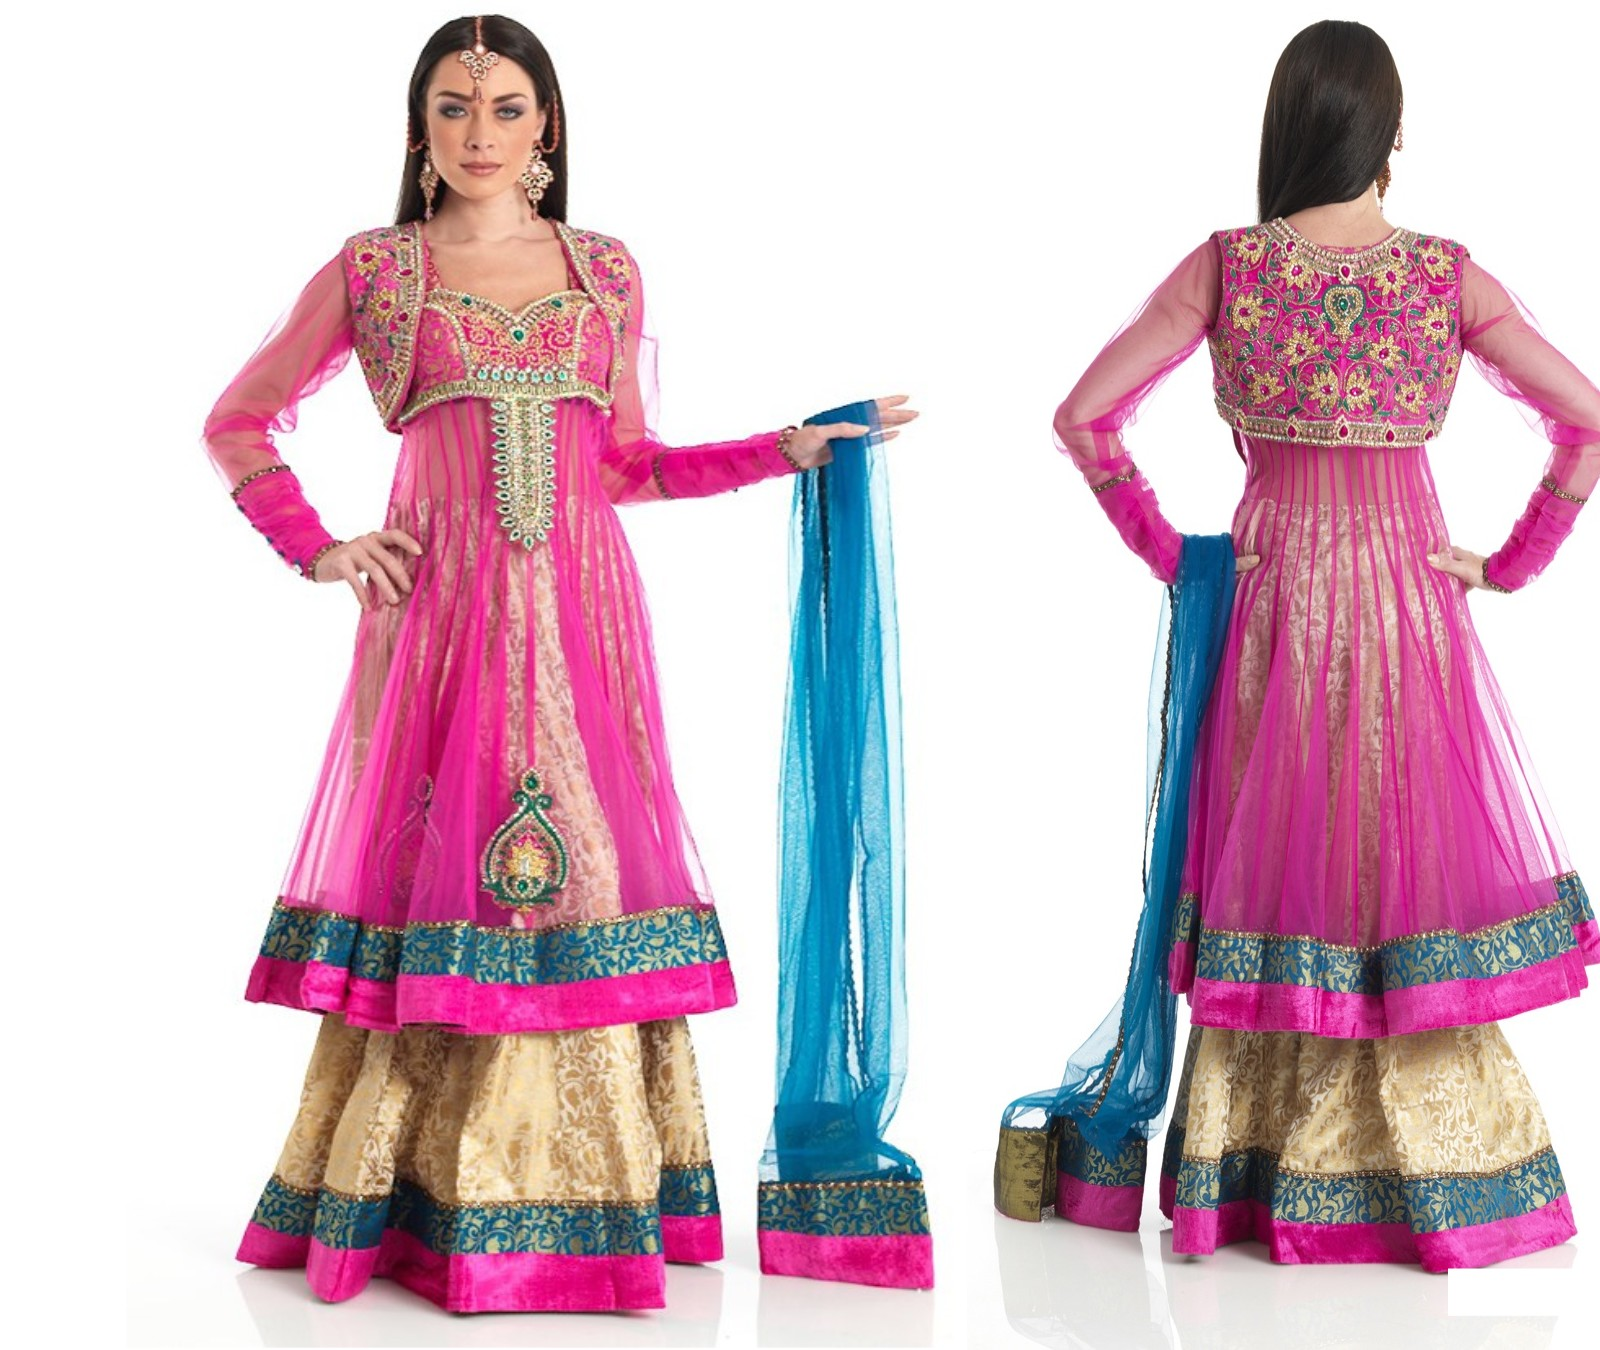 Double Shirt Dresses Designs 2012 2013 Indian Double Shirts Frock Styles She Styles